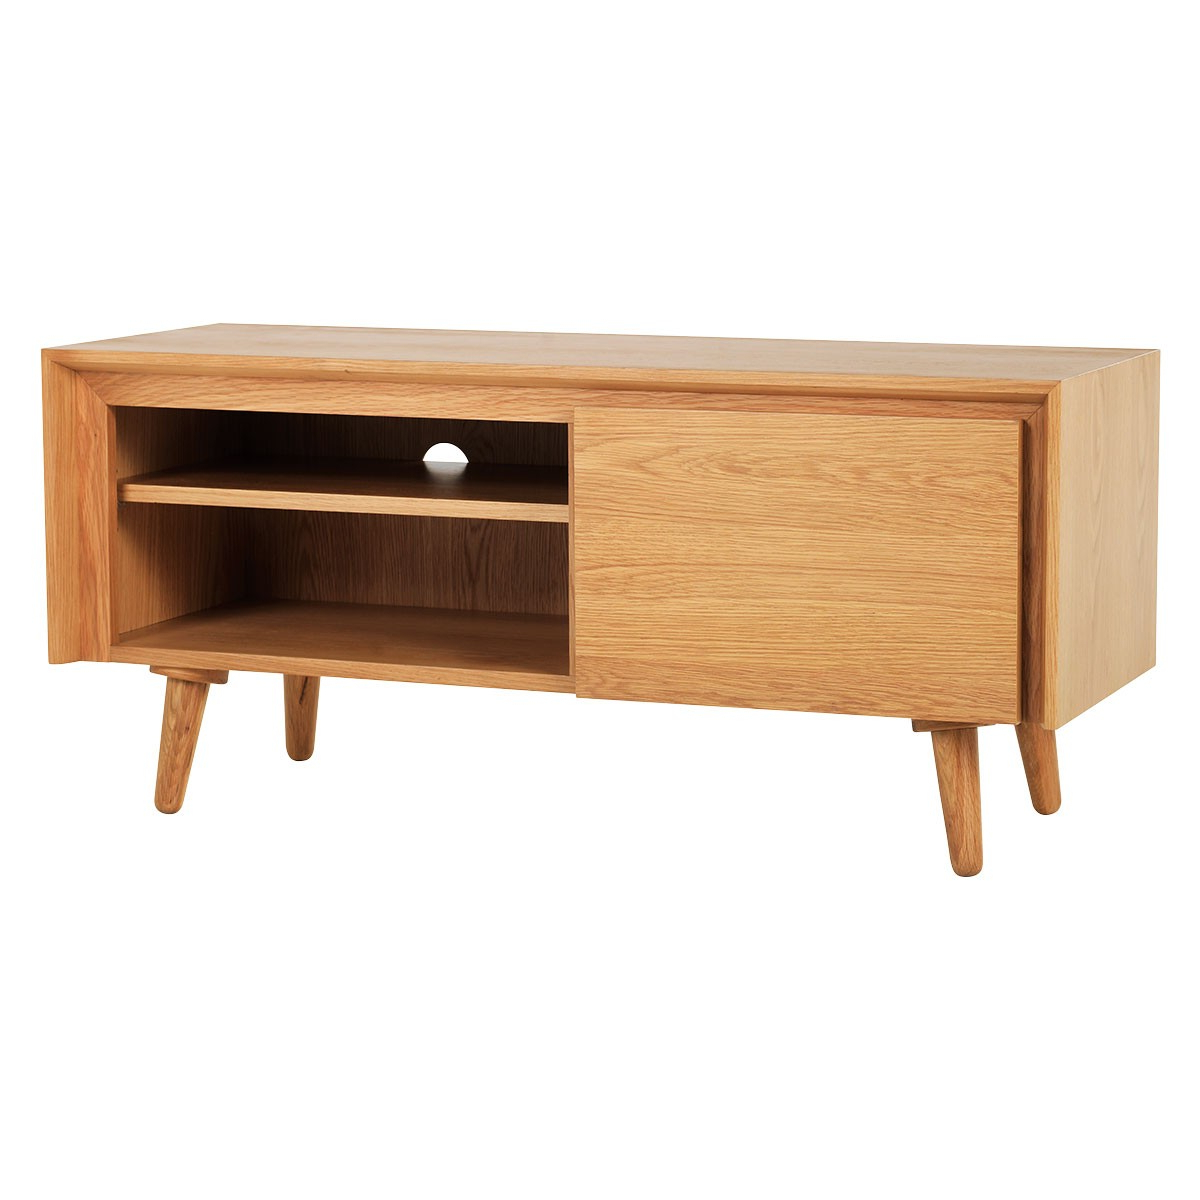 Retro Corner Tv Stands In Well Known Tv Stands & Units (View 12 of 20)